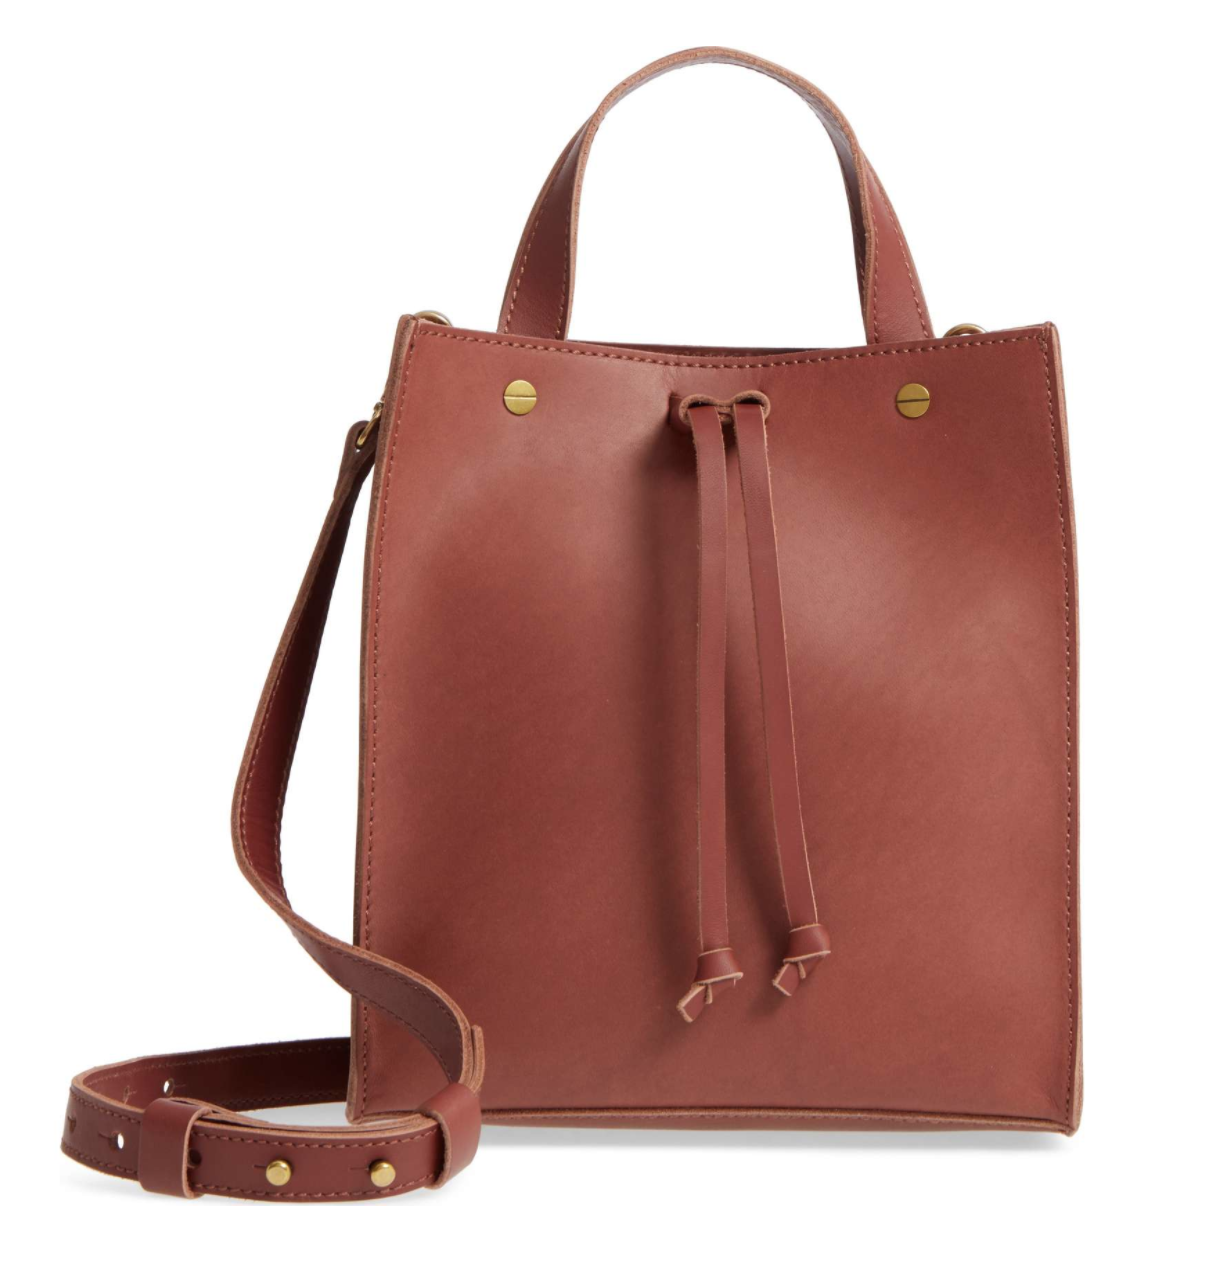 Madewell Small Trick Leather Top Handle Tote - Weekly Finds by popular North Carolina style blogger Glitter, Inc.